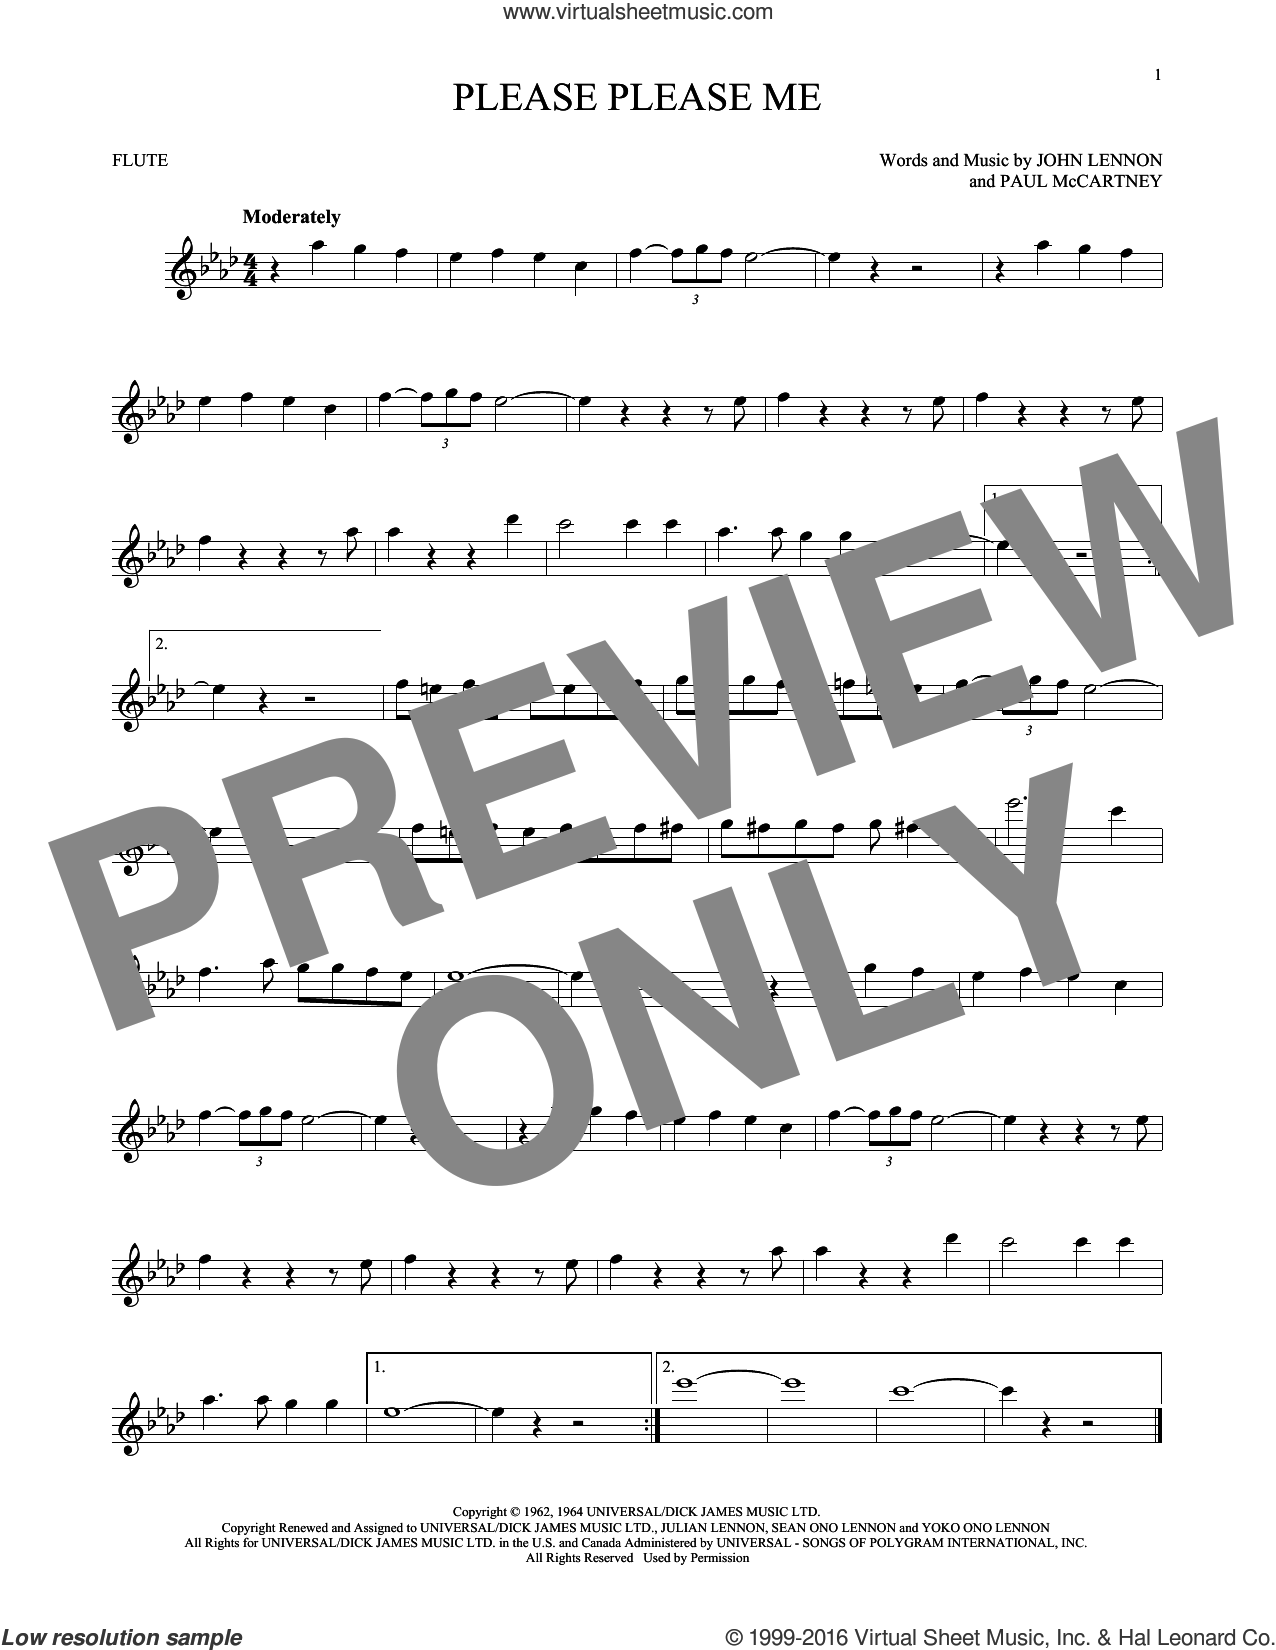 Please Please Me sheet music for flute solo by The Beatles, John Lennon and Paul McCartney, intermediate skill level